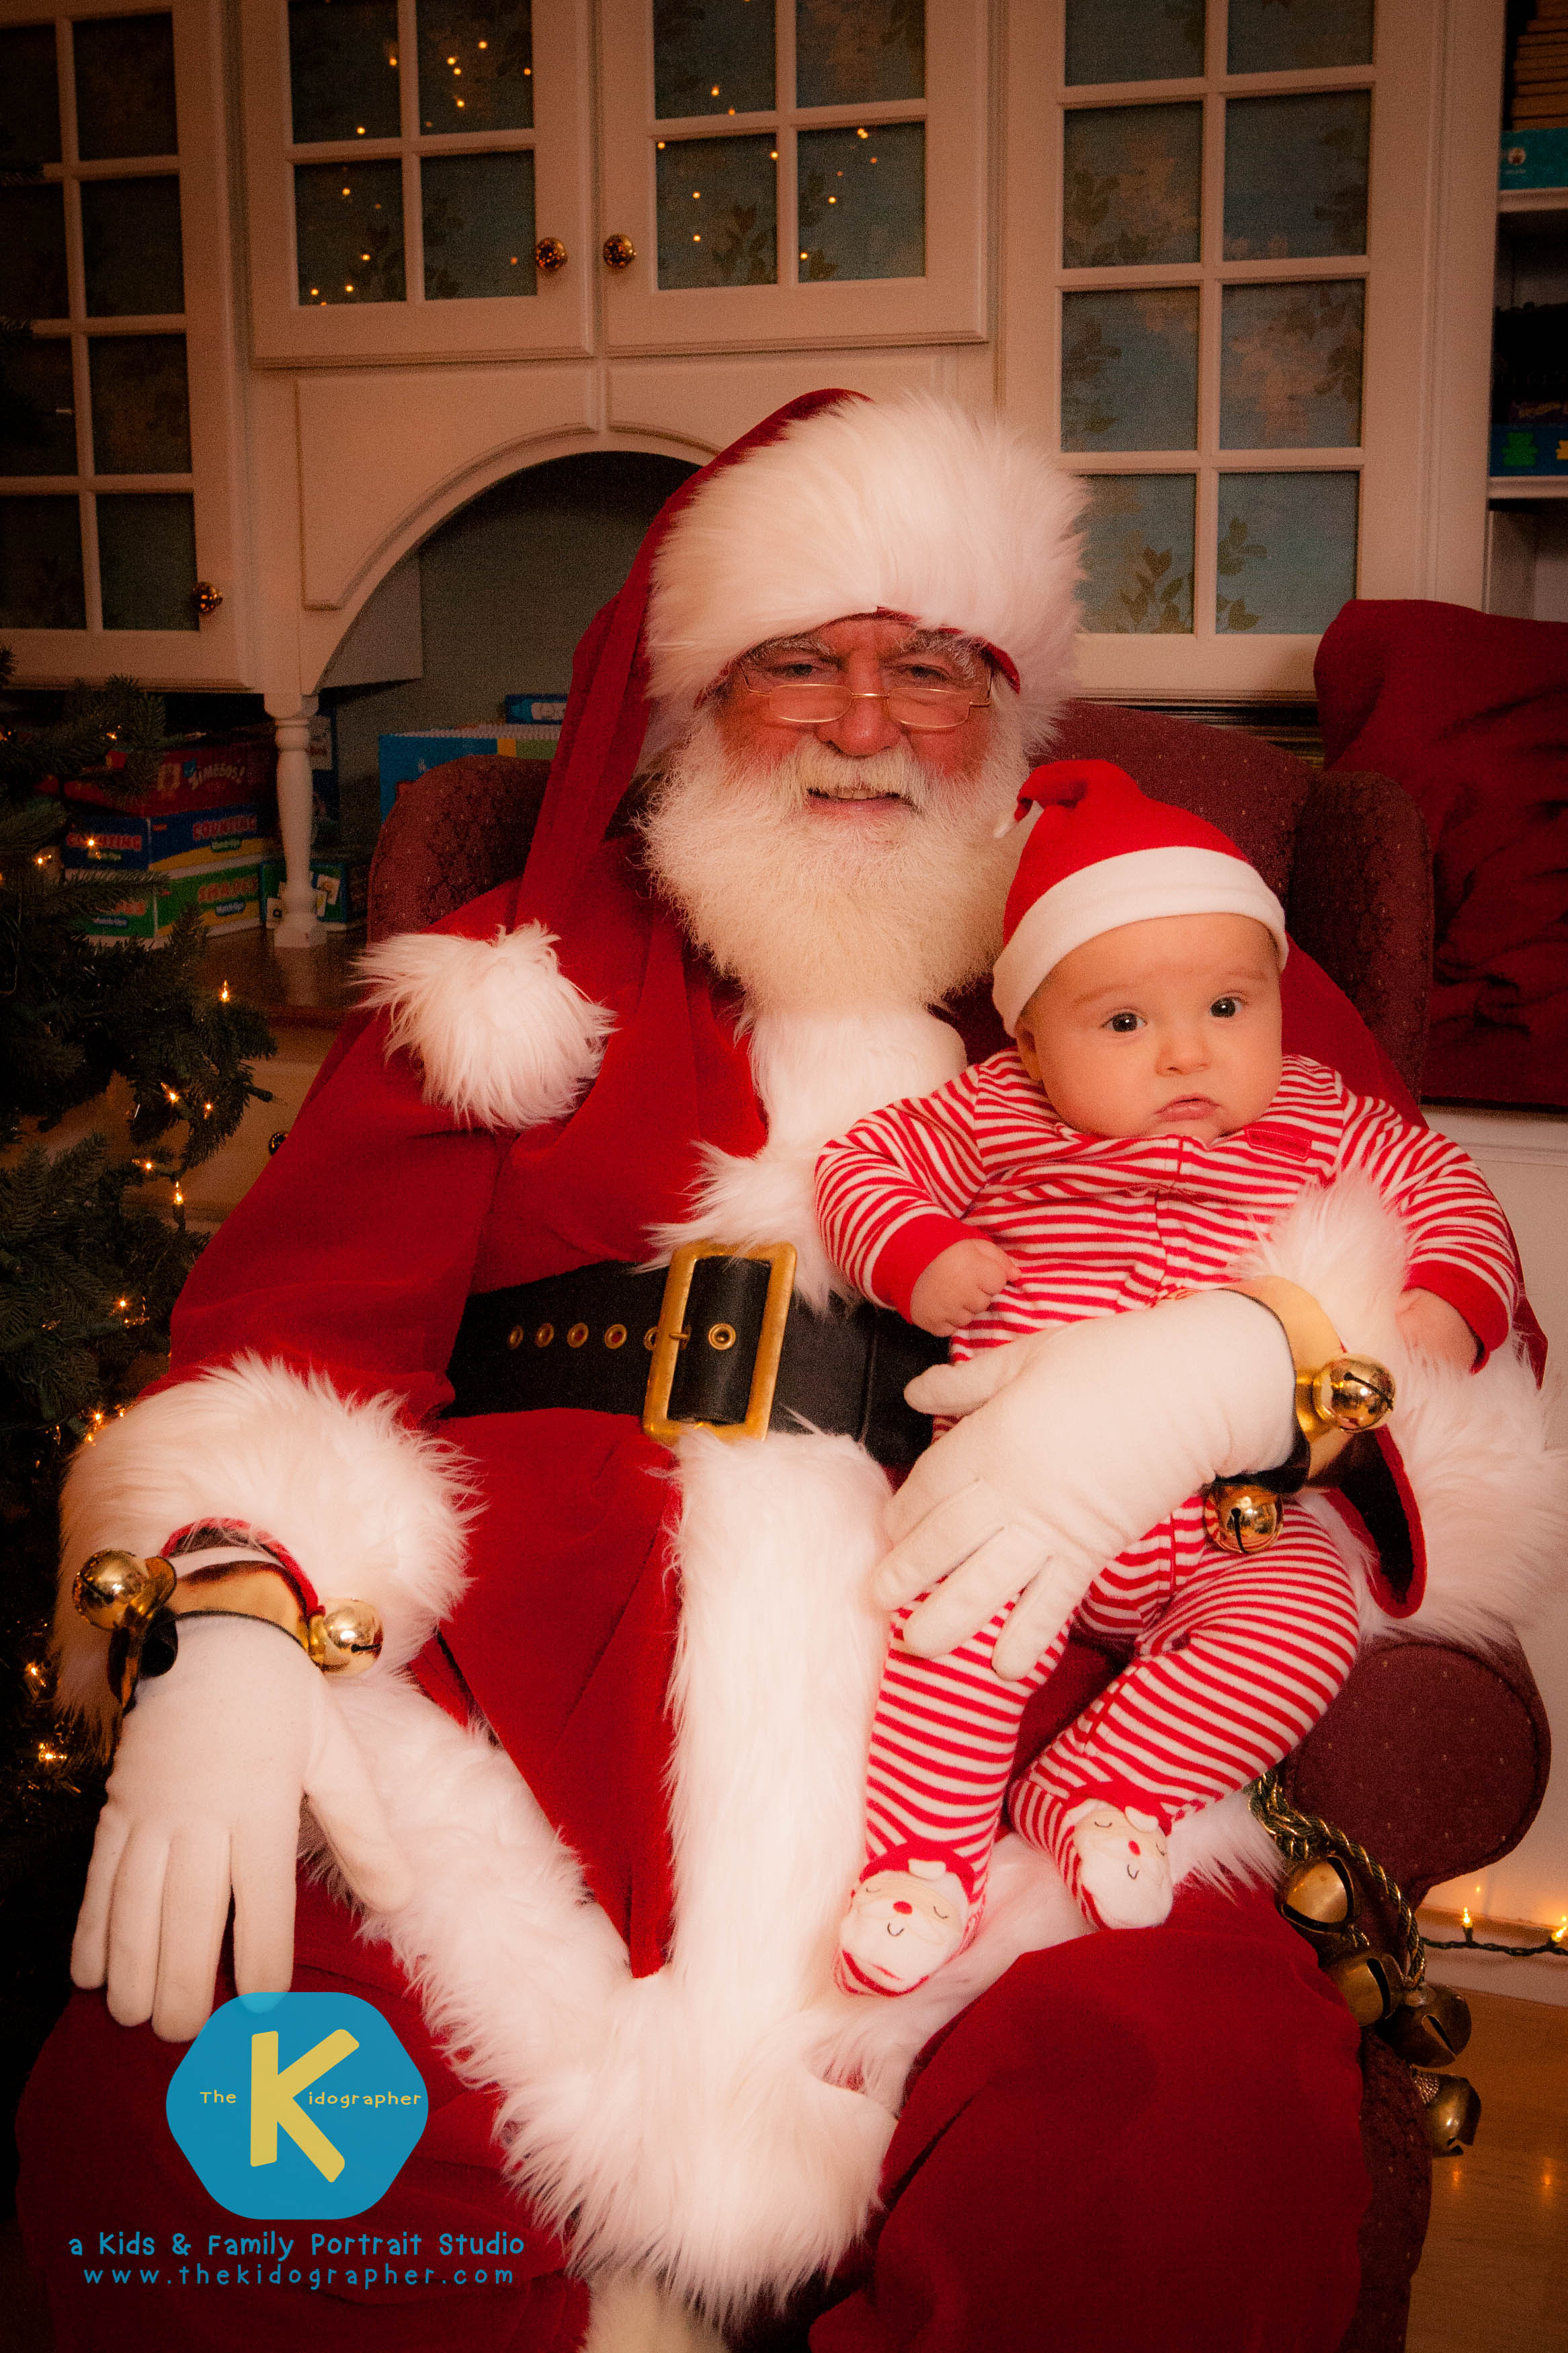 THE_KIDOGRAPHER_PHOTOS_WITH_SANTA-120.jpg